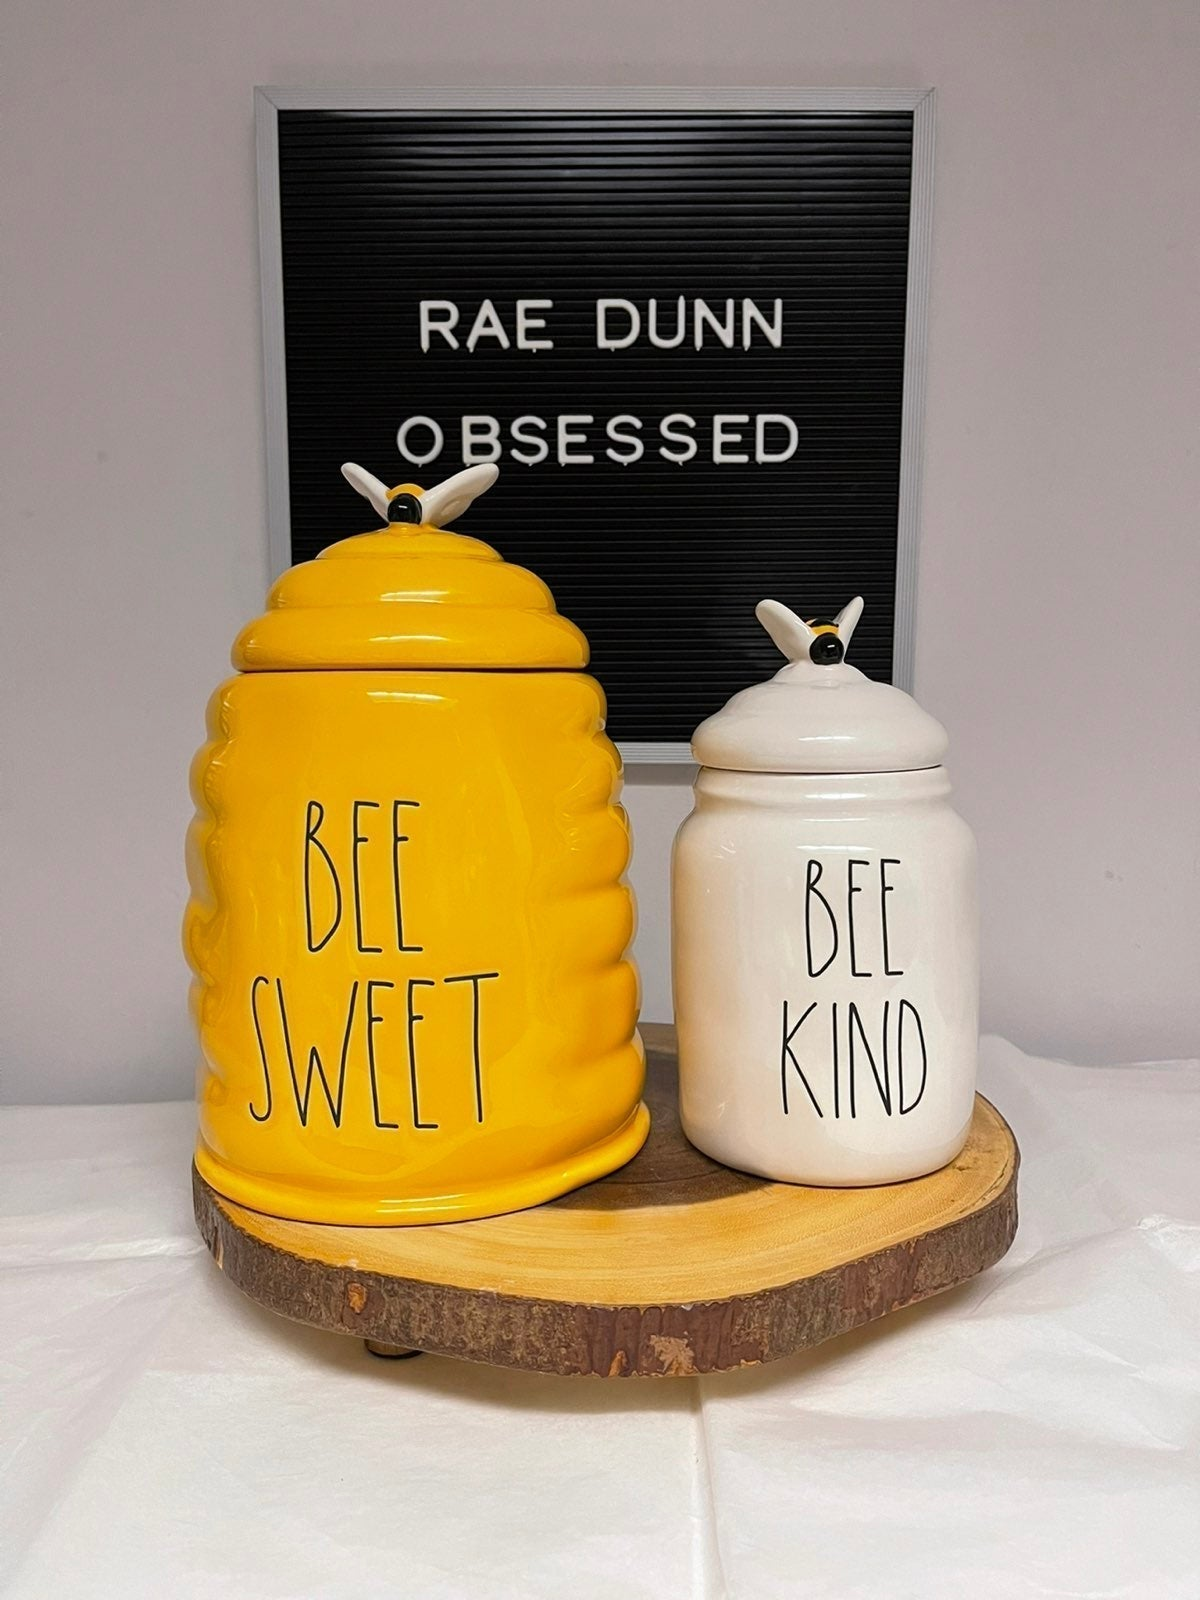 Rae Dunn BEE SWEET & BEE KIND Canisters